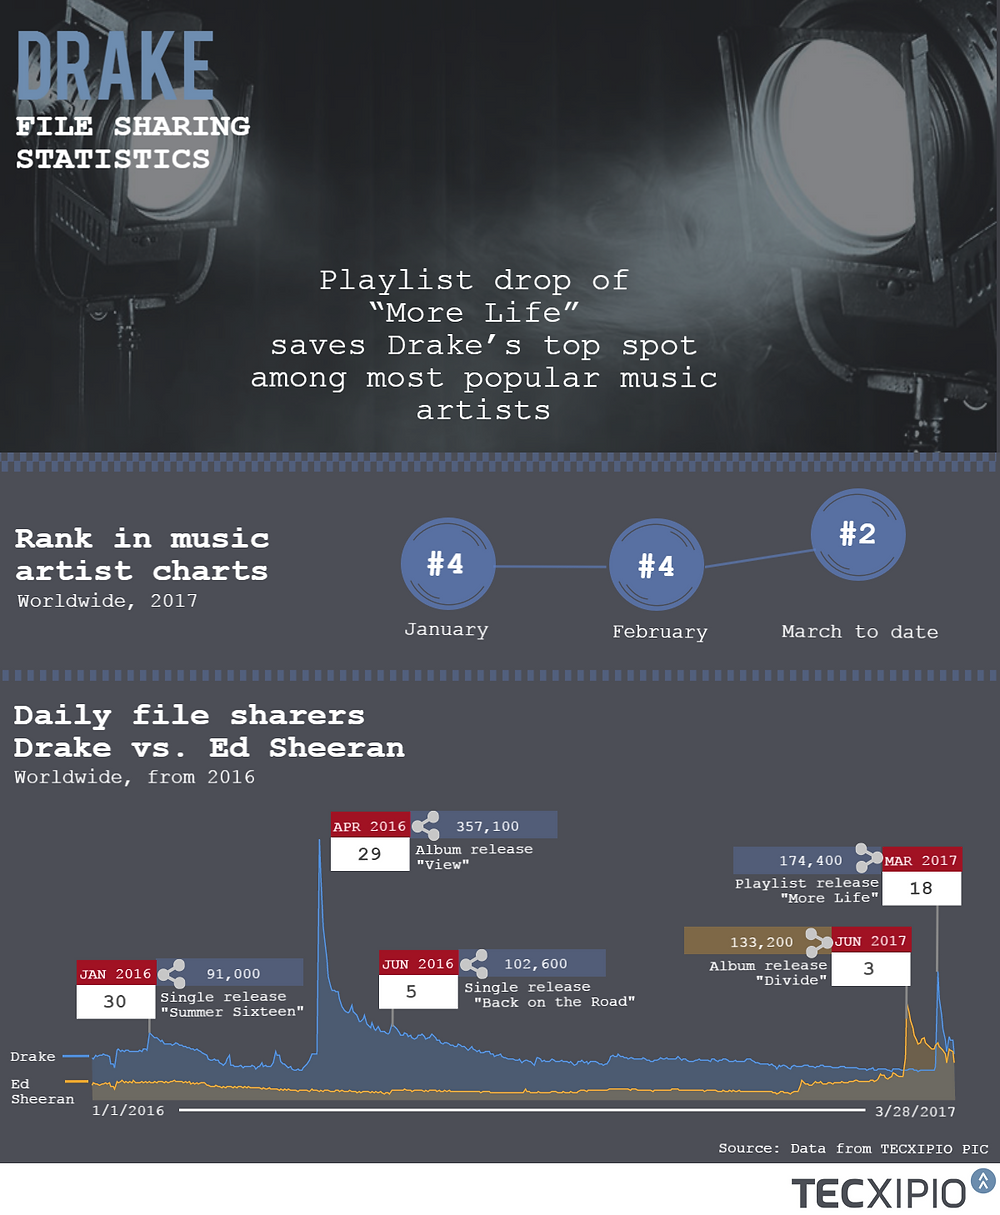 TECXIPIO infographic - development of file sharing activity of Drake's music after his latest playlist drop